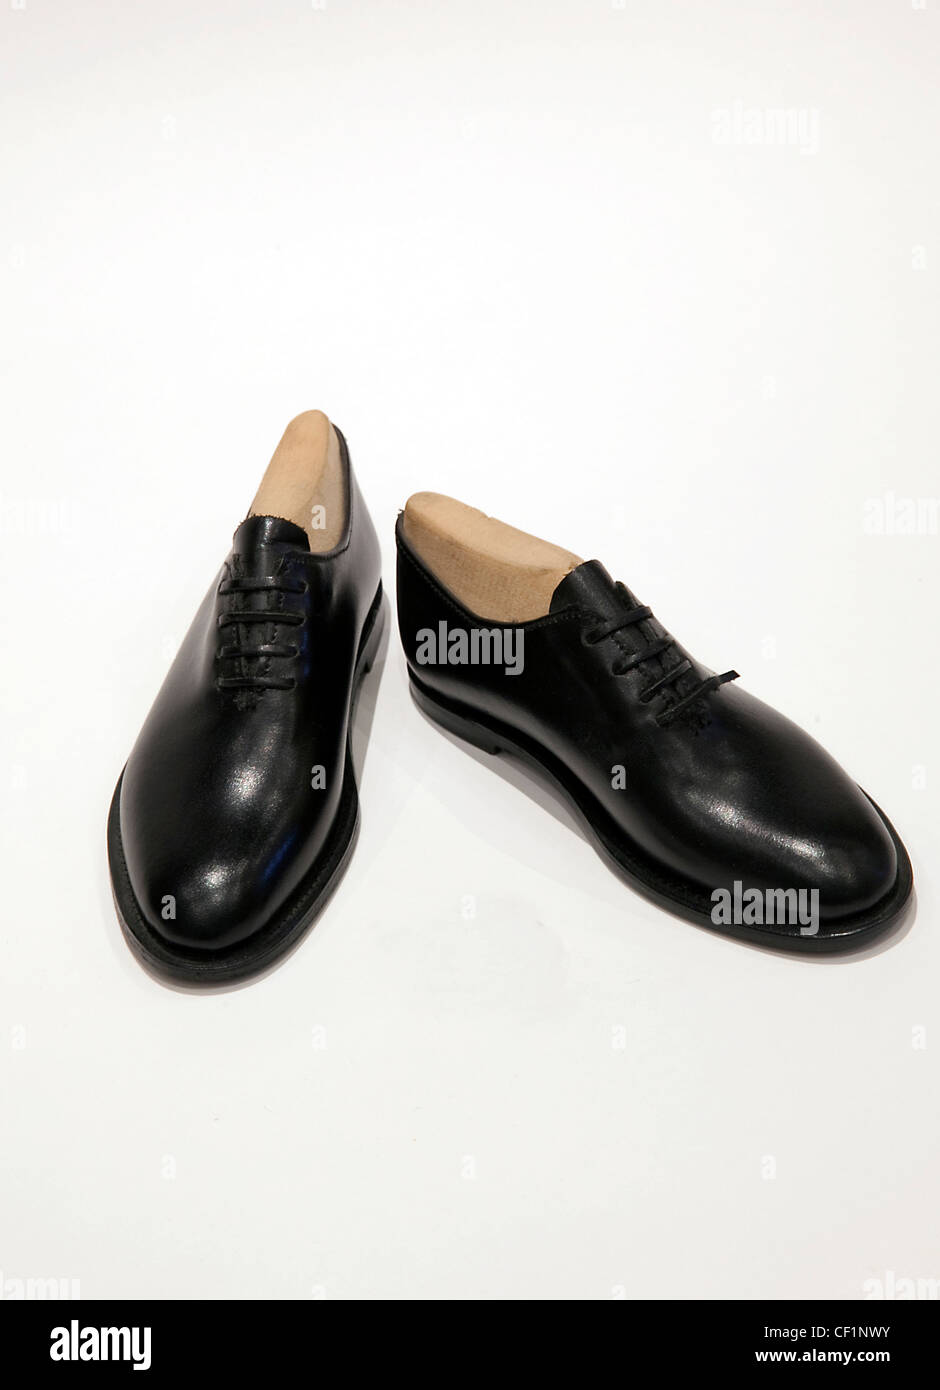 Mens shoes Stock Photo: 43679719 Alamy